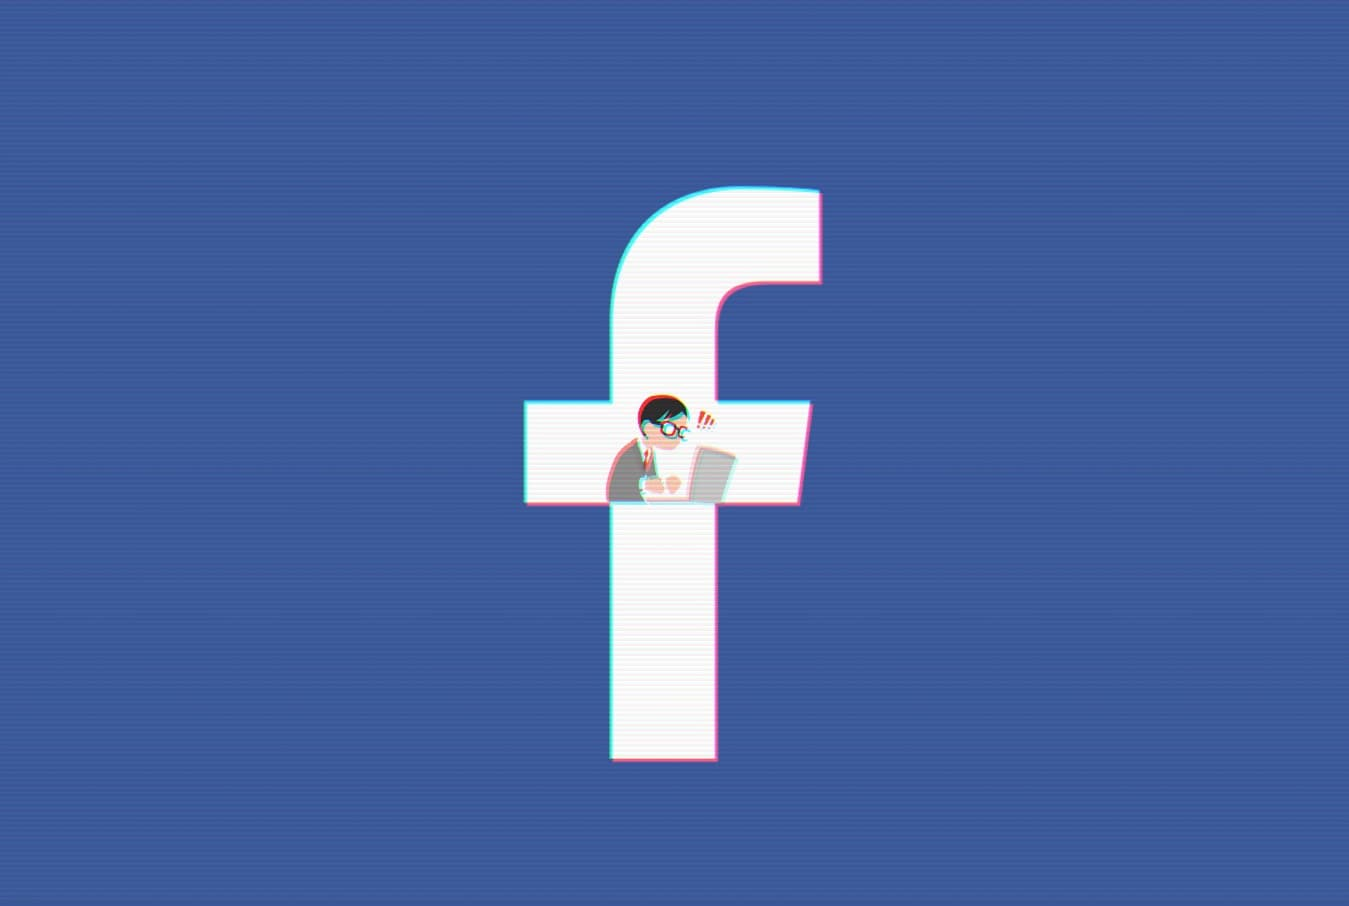 Facebook exposed user data to thousands of app developers